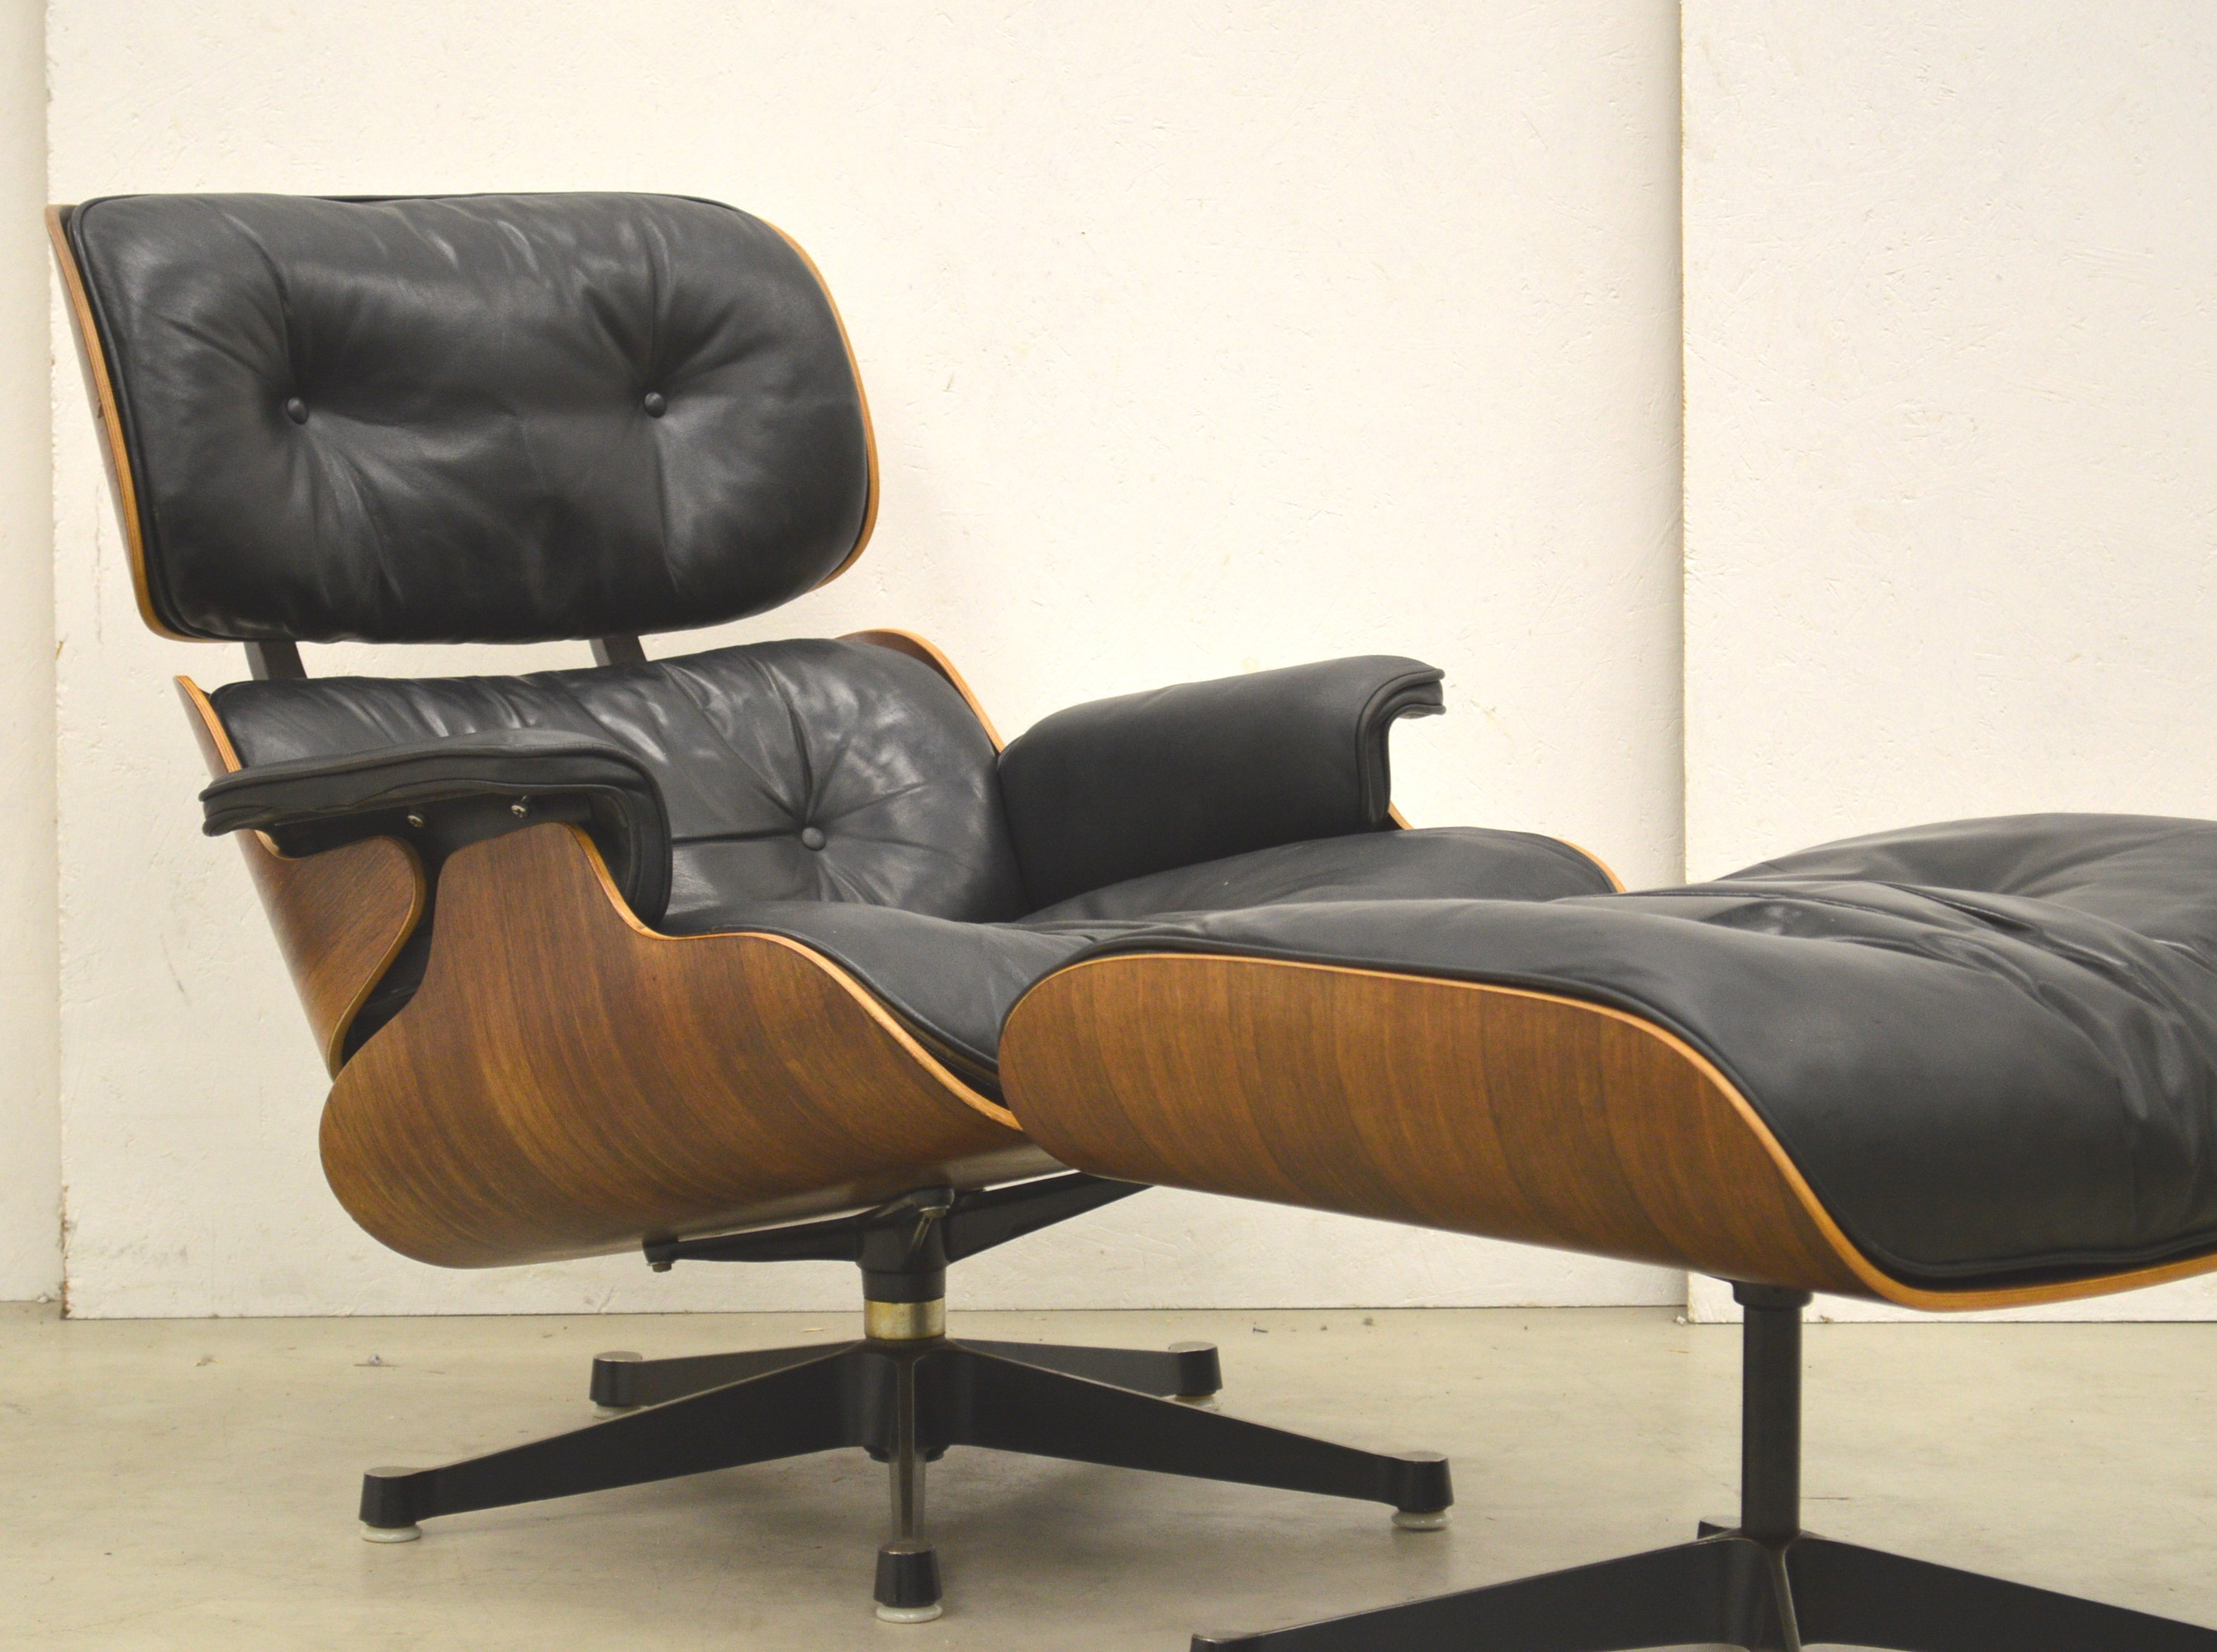 Eames Lounge Stoel : Early herman miller eames lounge chair ottoman s interior aksel